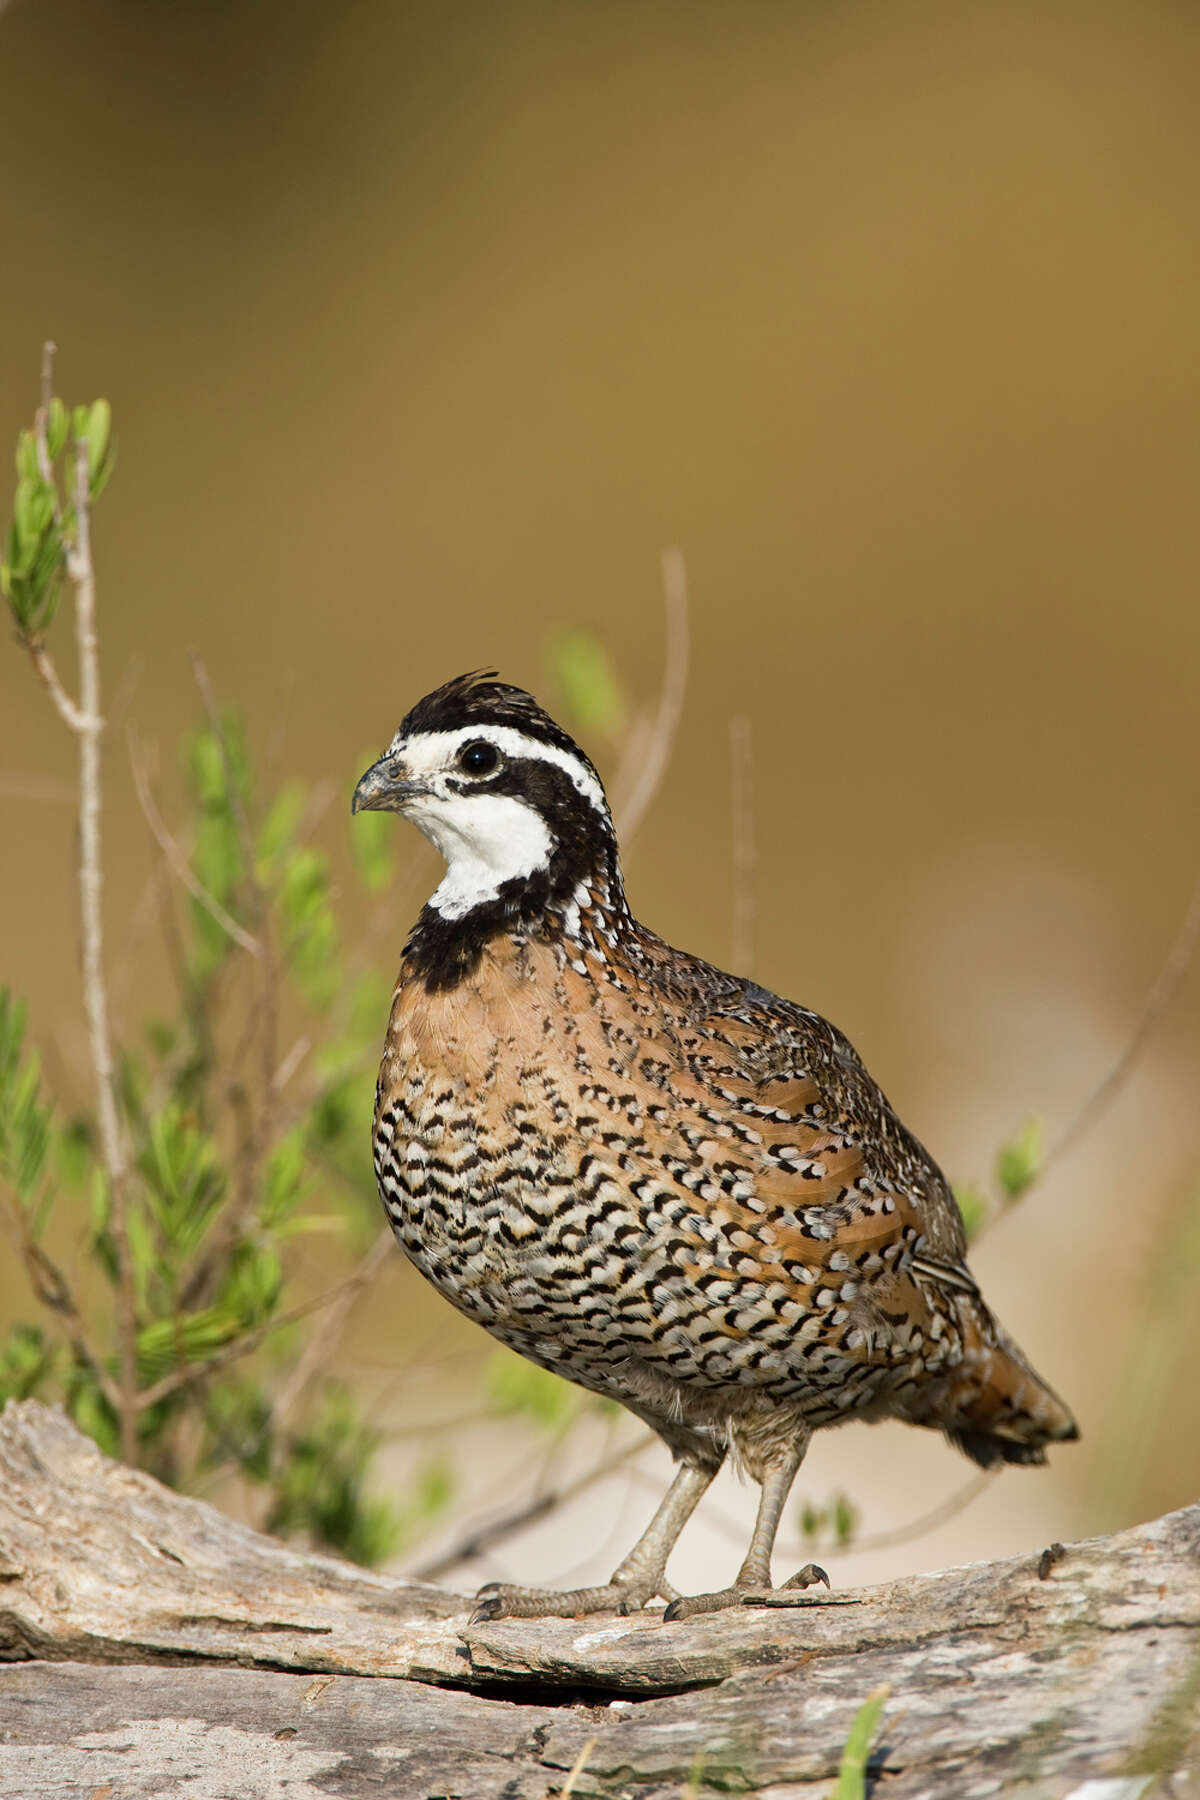 Texas' iconic quail use tall native grasses for shelter and food.